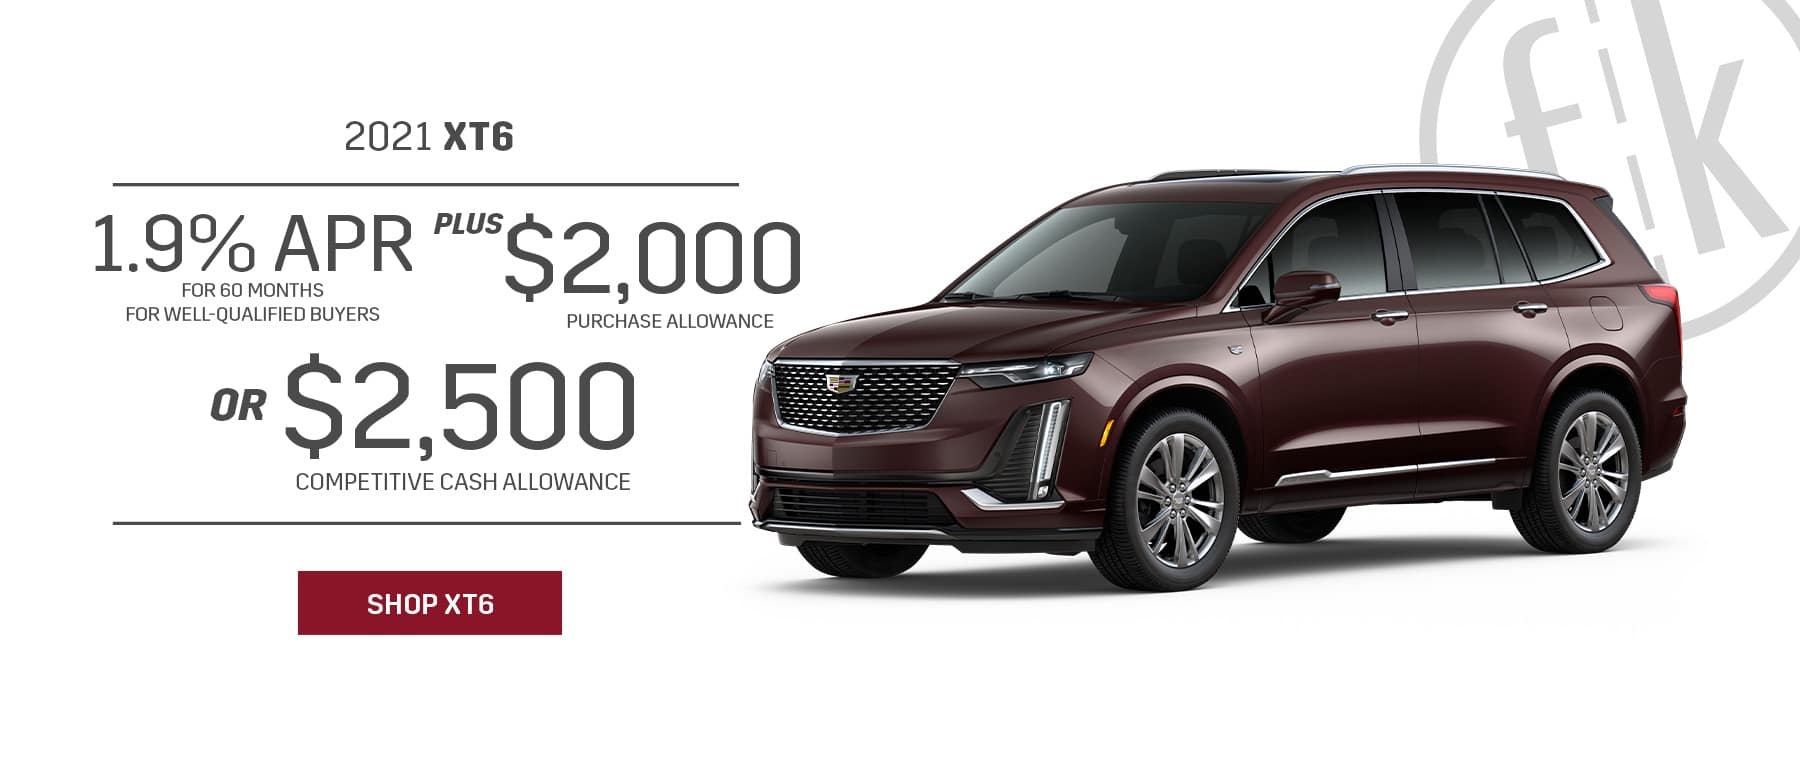 2021 XT6 1.9% for 60 mos PLUS $2,000 Purchase Allowance OR $2,500 Competitive Cash Allowance